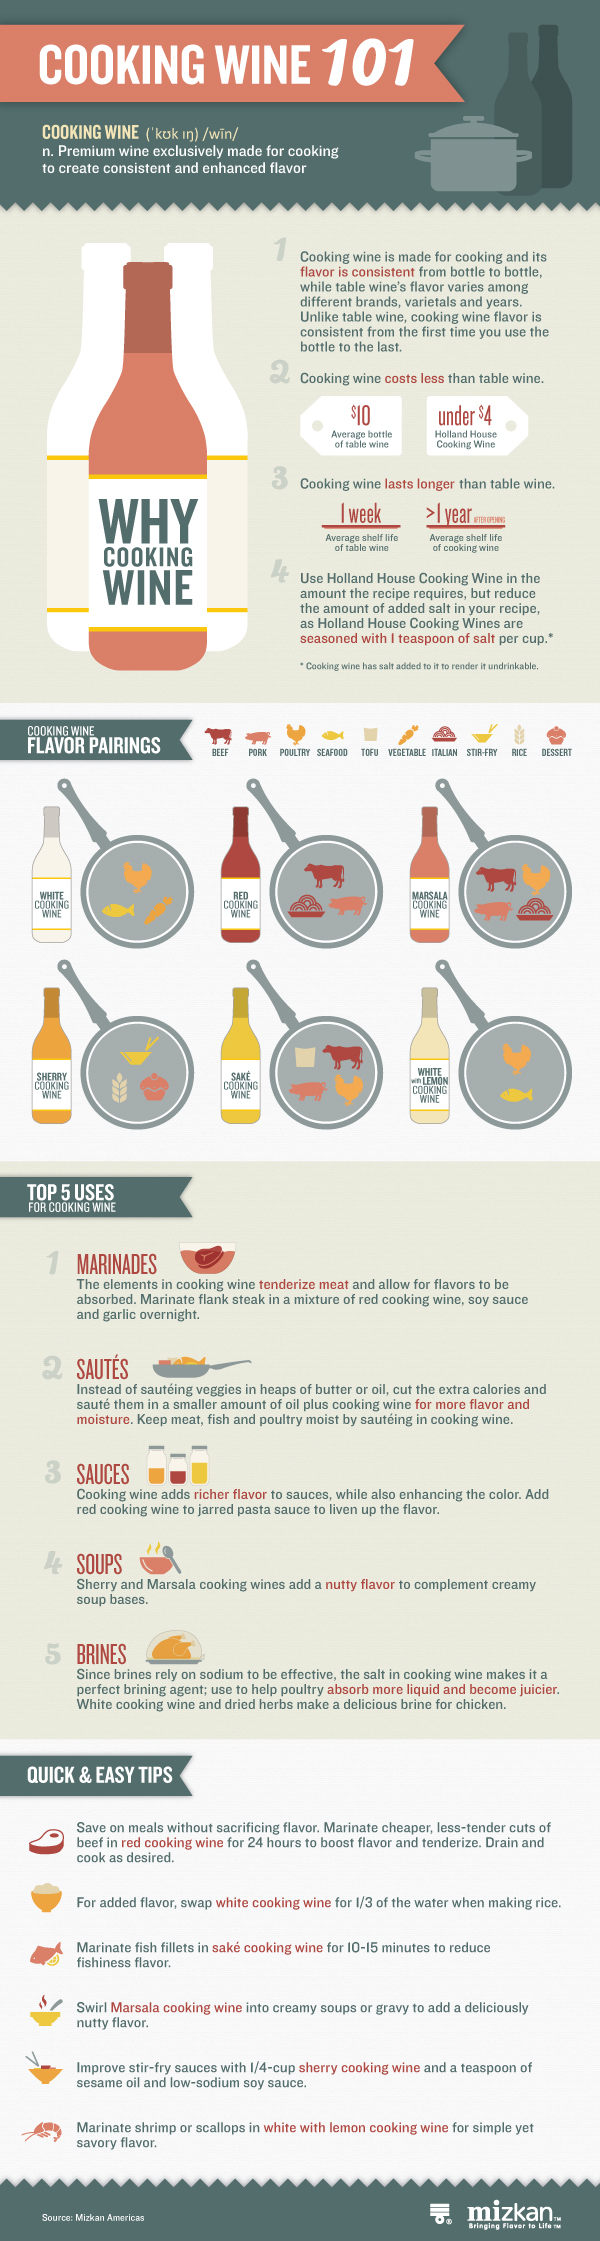 Tips and Ideas for Using Cooking Wine